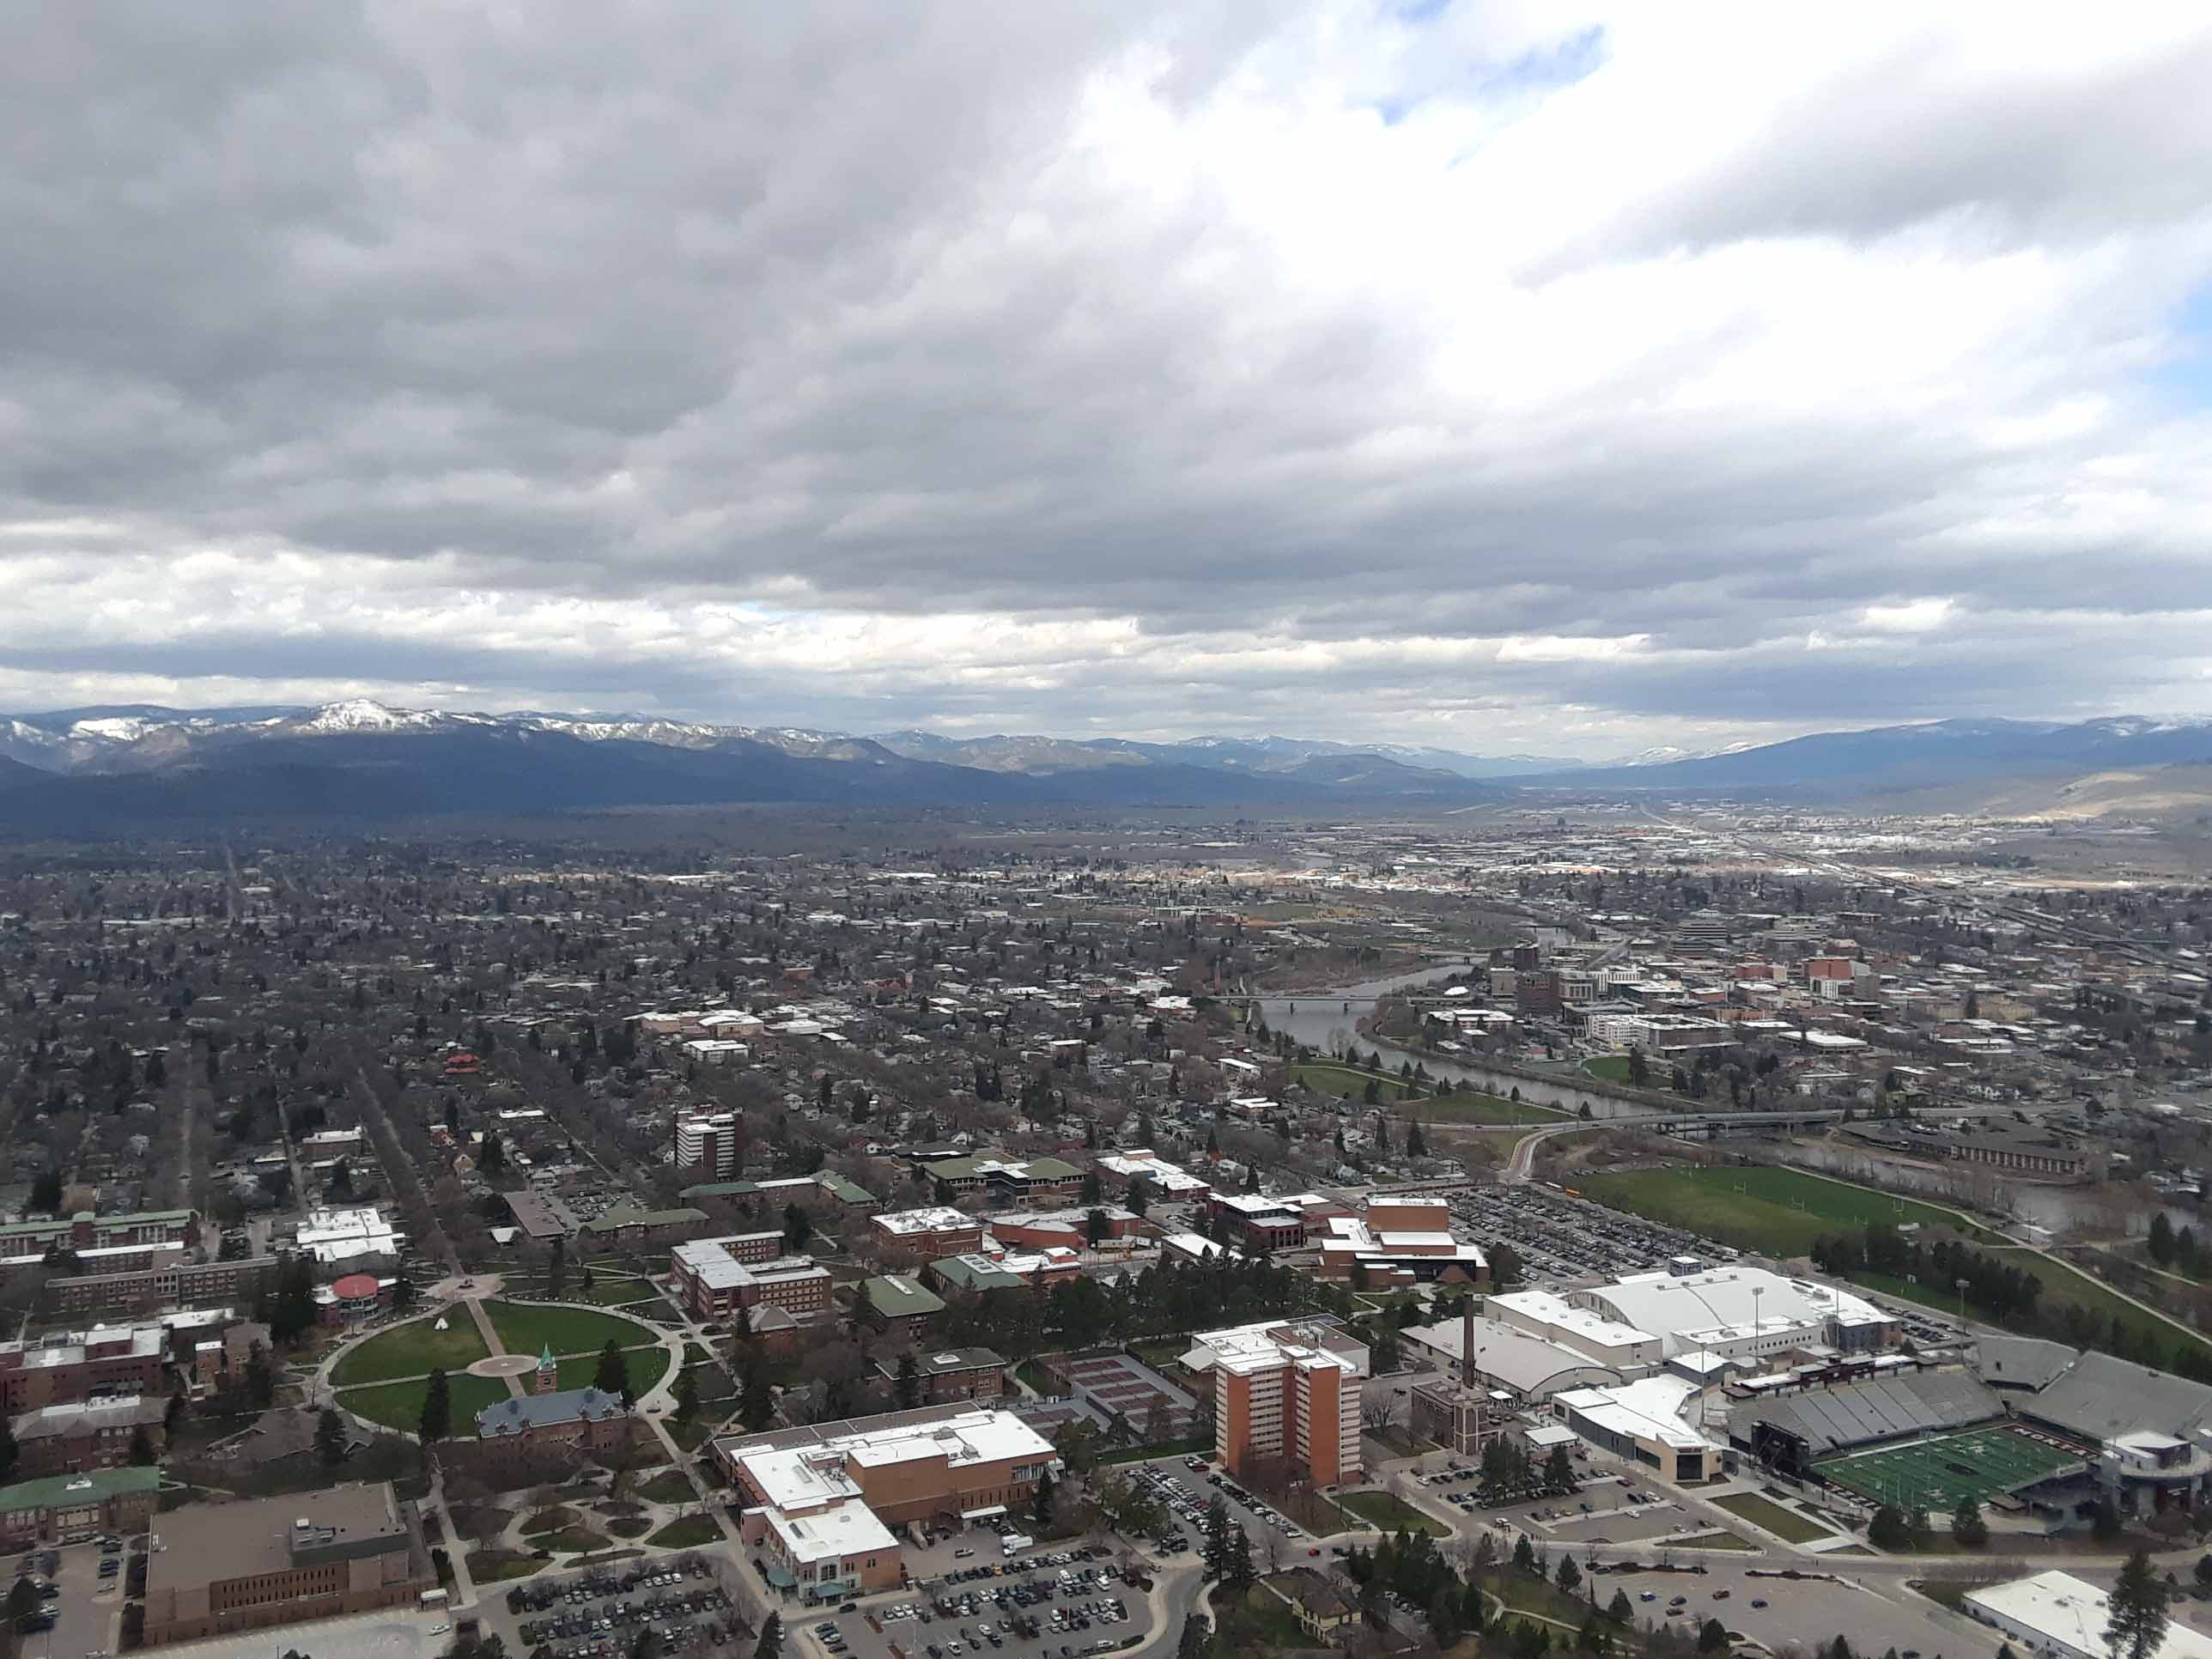 Sential Mountain is a quick hike accesible from downtown Missoula